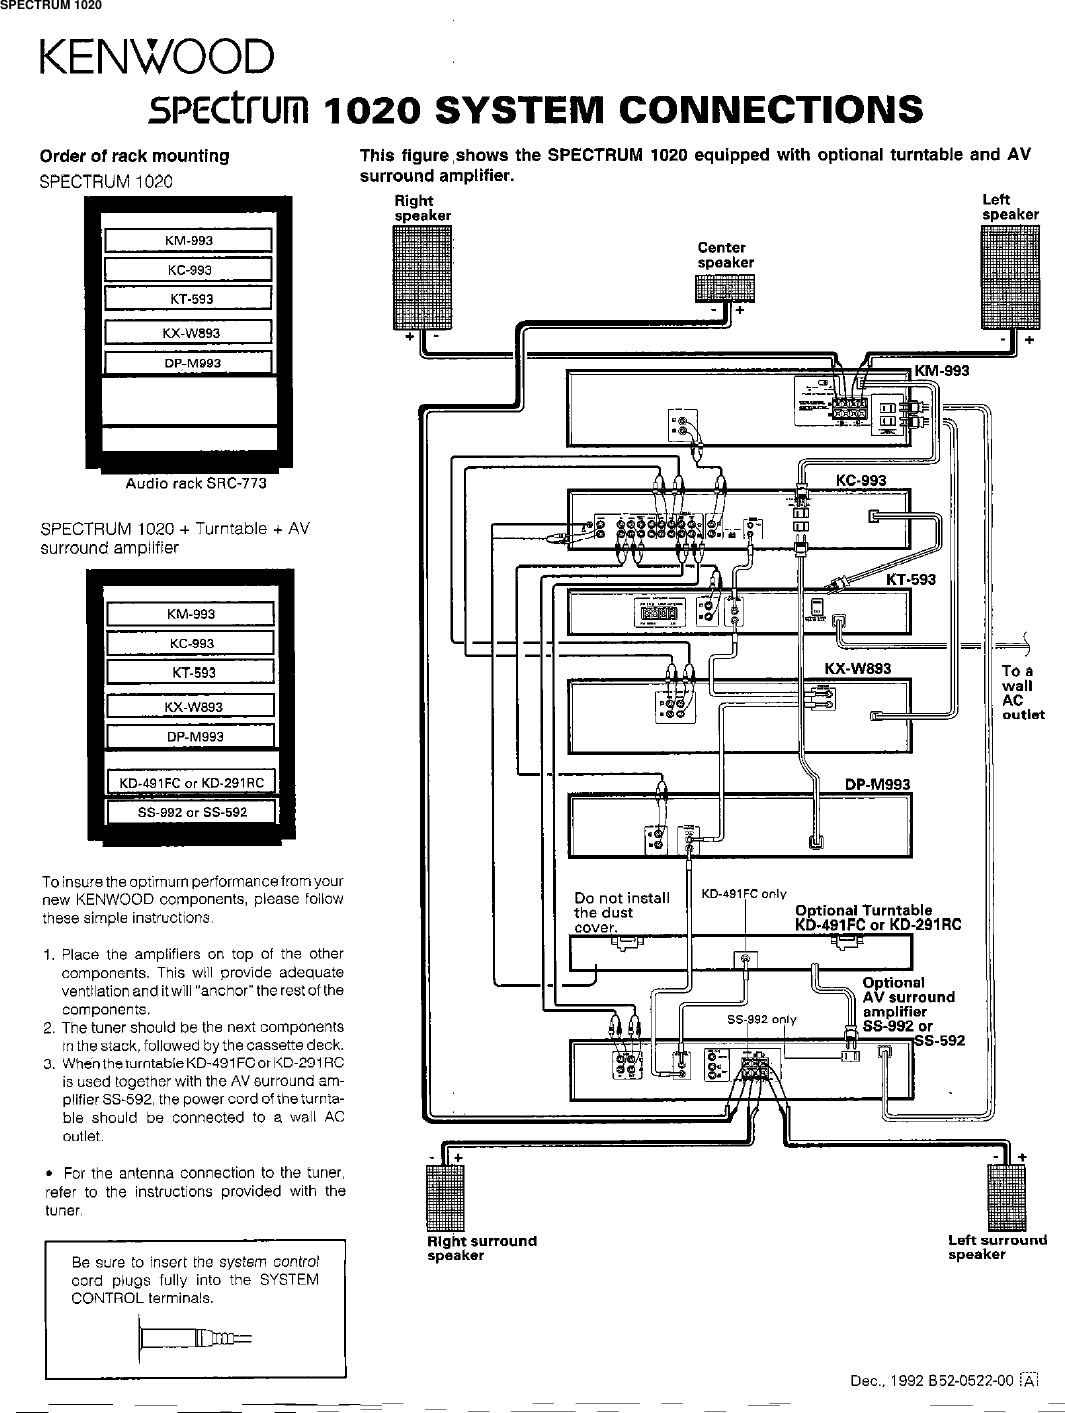 Kenwood Spectrum 1020 Users Manual